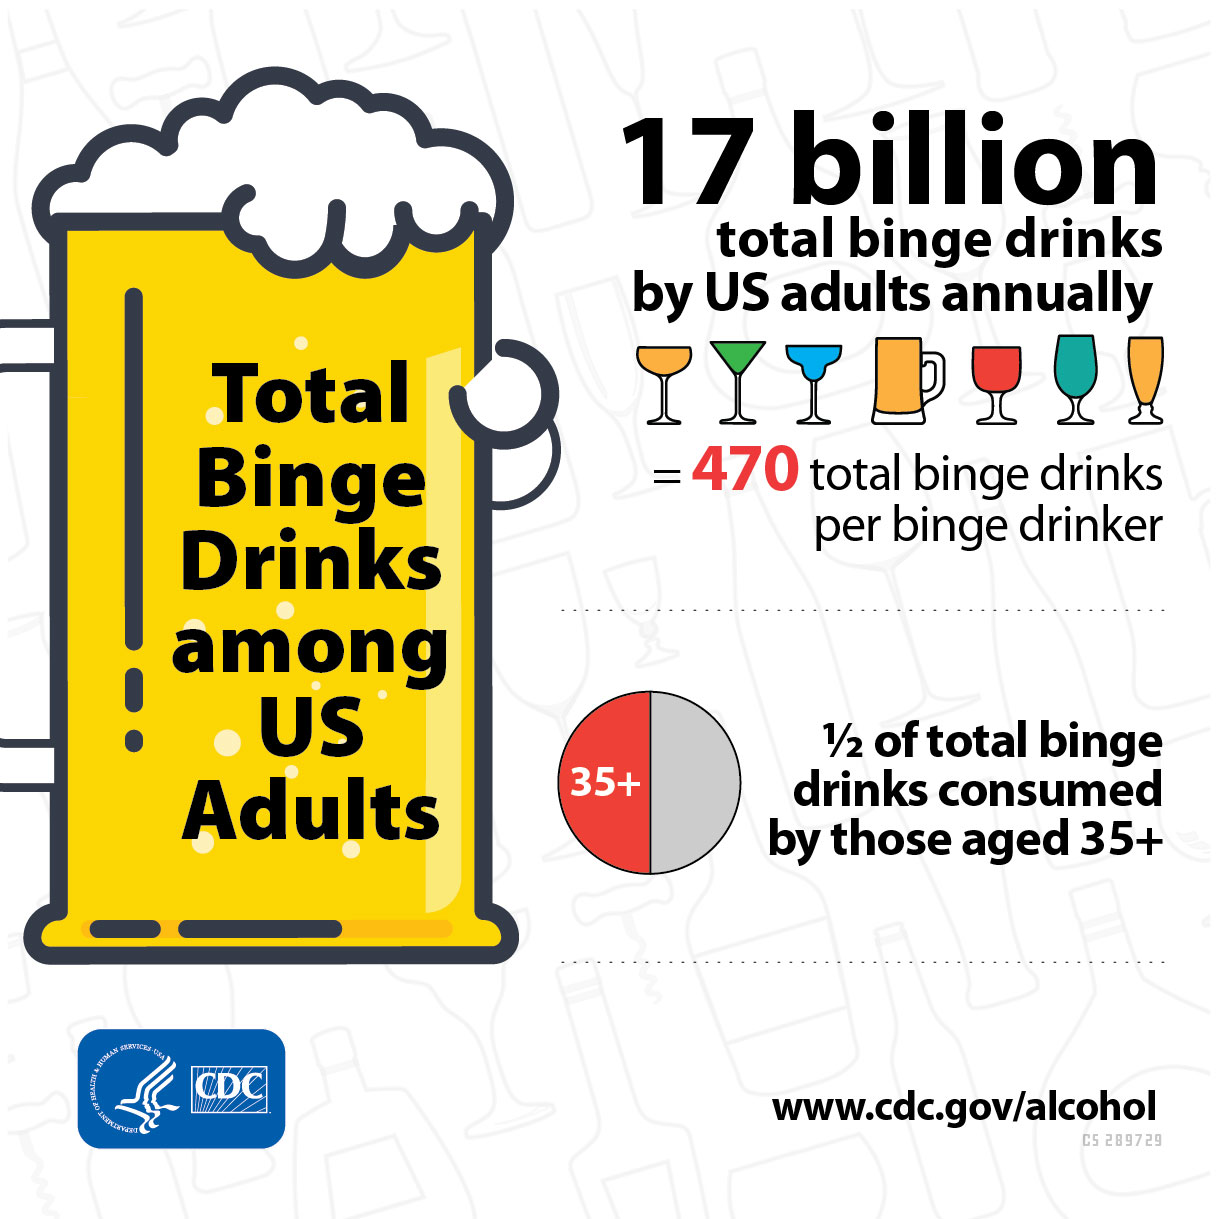 Cdc Billion s Adults During Year Newsroom 17 U Have Binges A Online Drinks